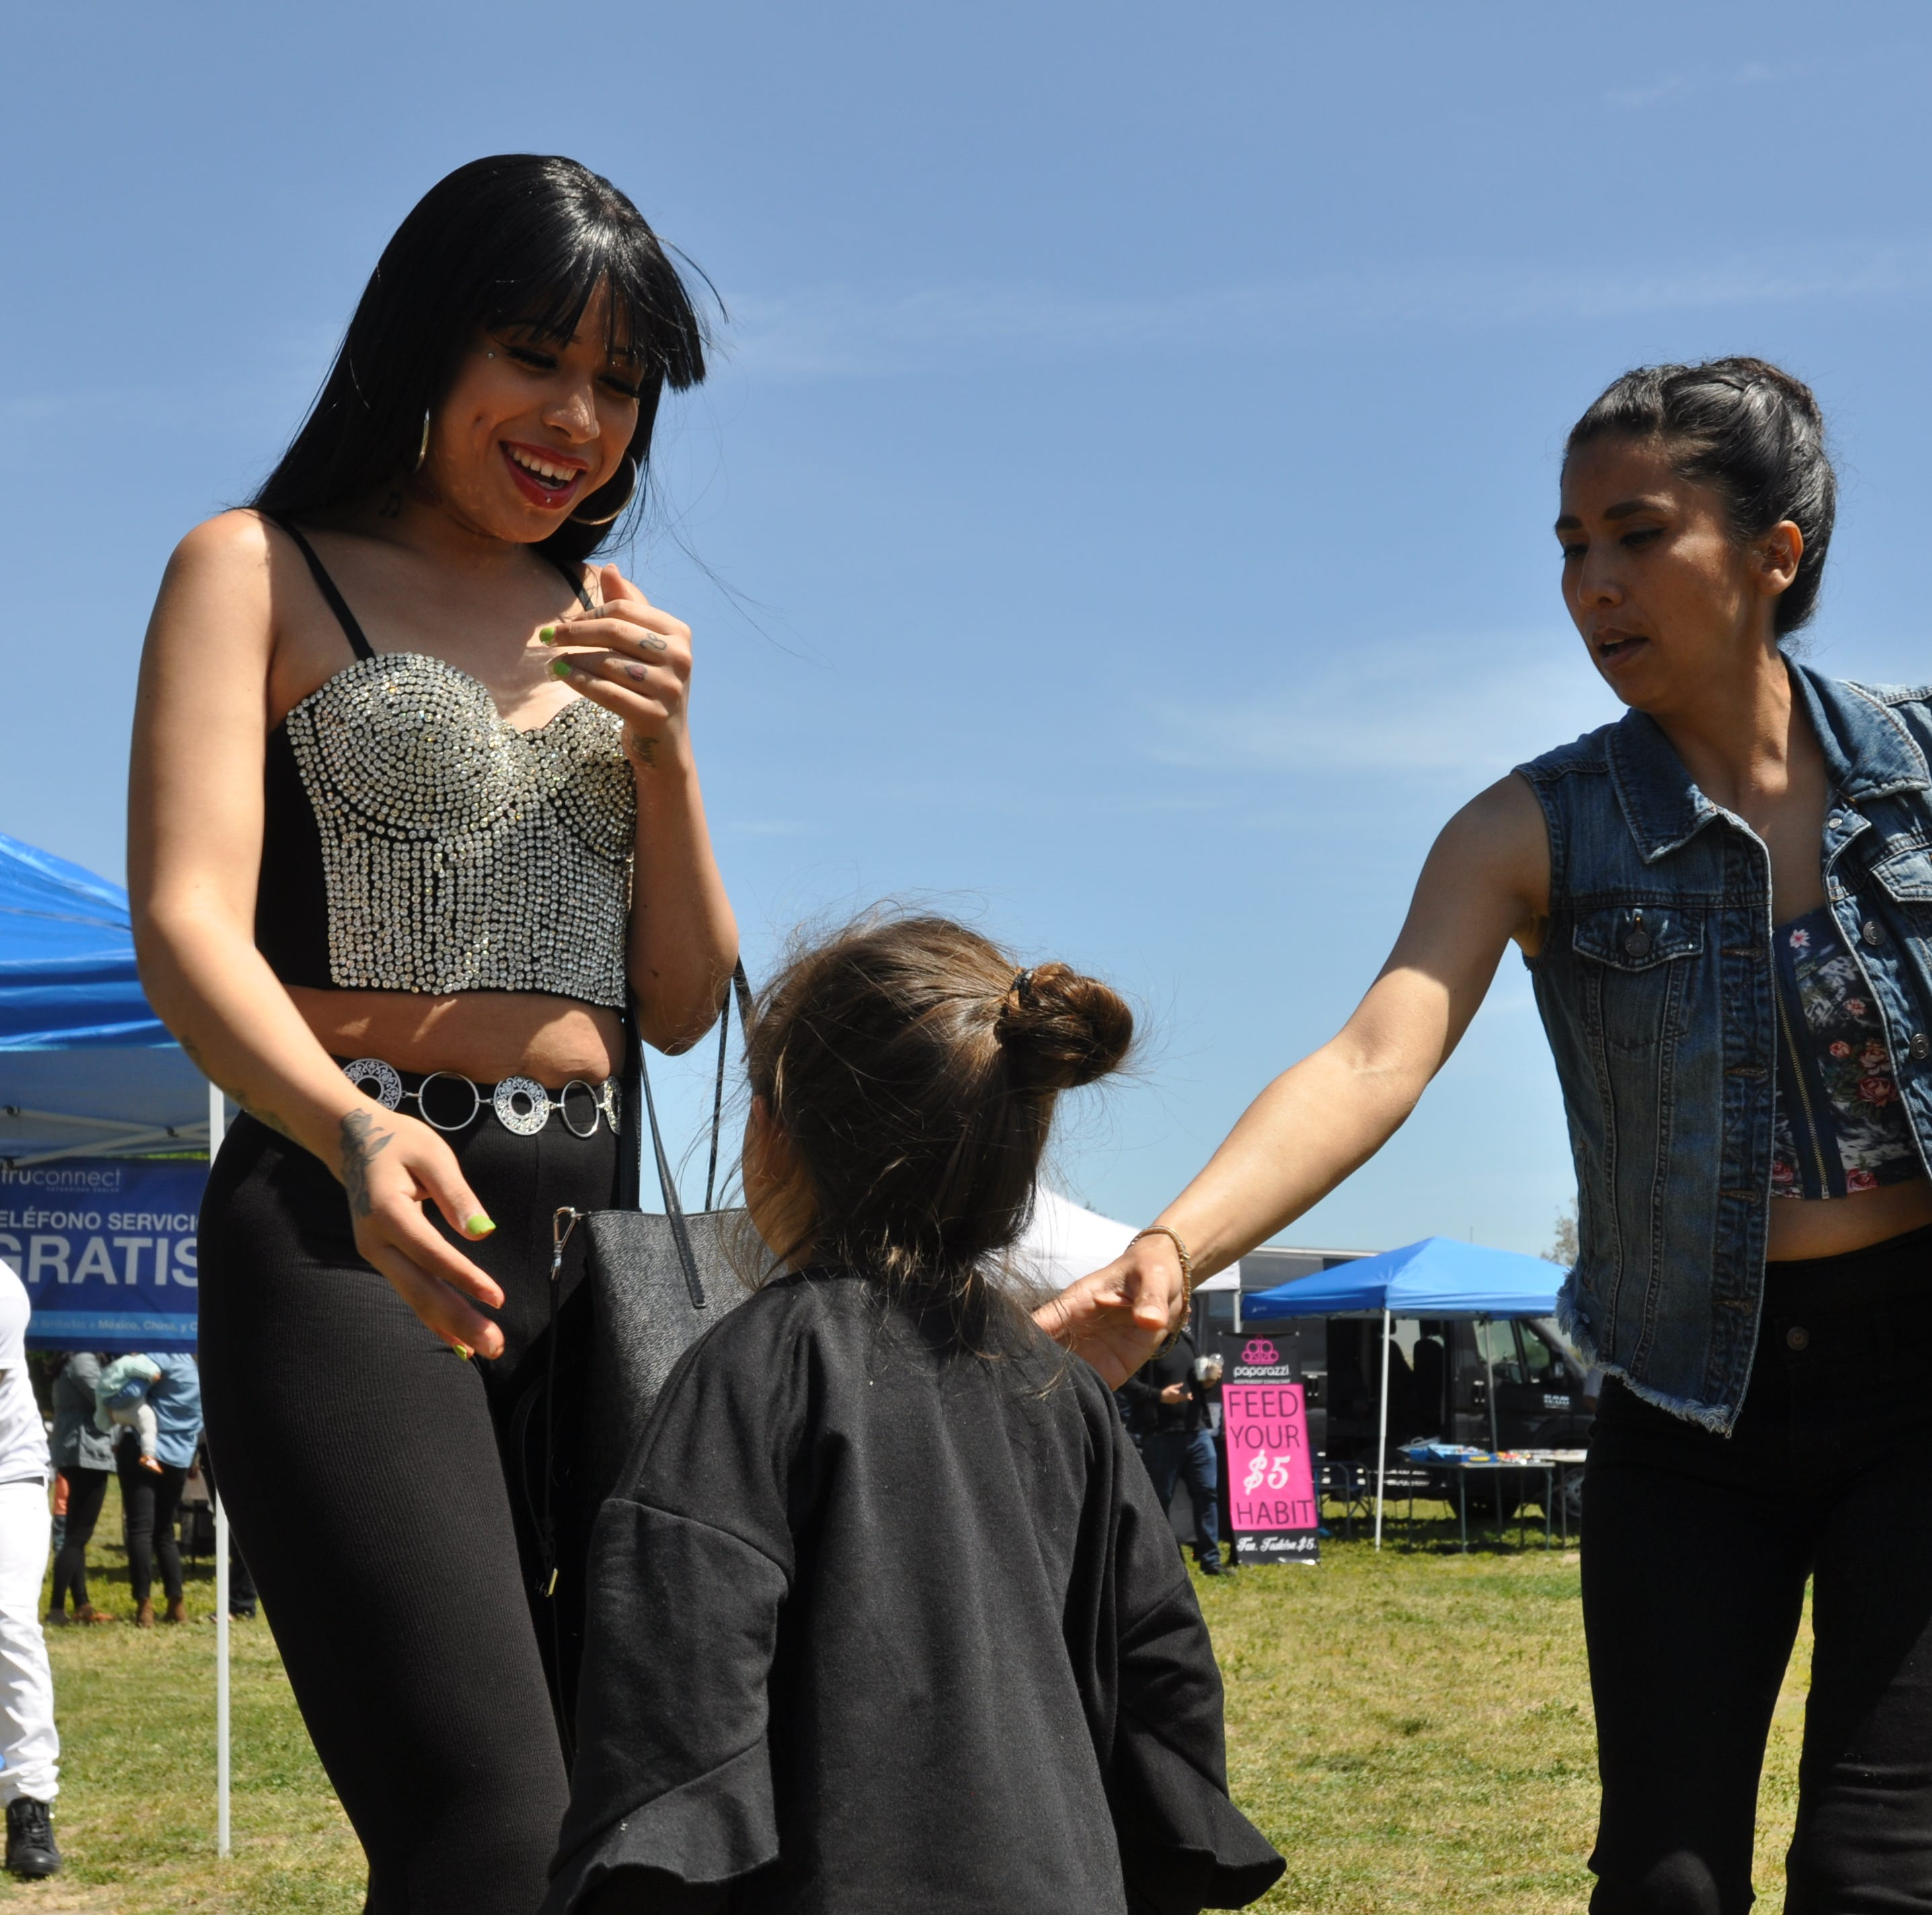 'Anything for Selenas': Salinas celebrates Selena's legacy in 2nd annual tribute festival